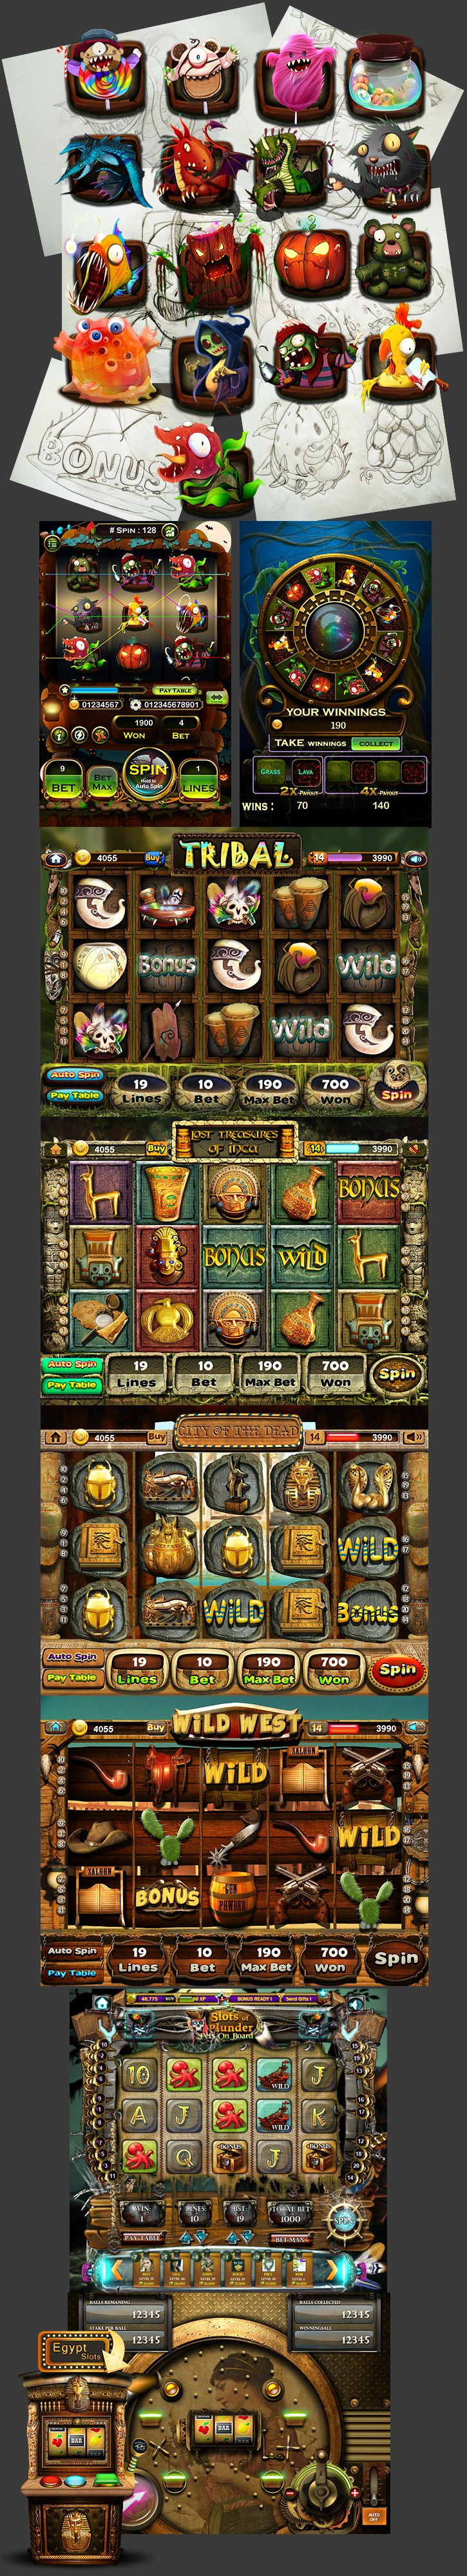 Casino Game Art, Slot Machines on Behance